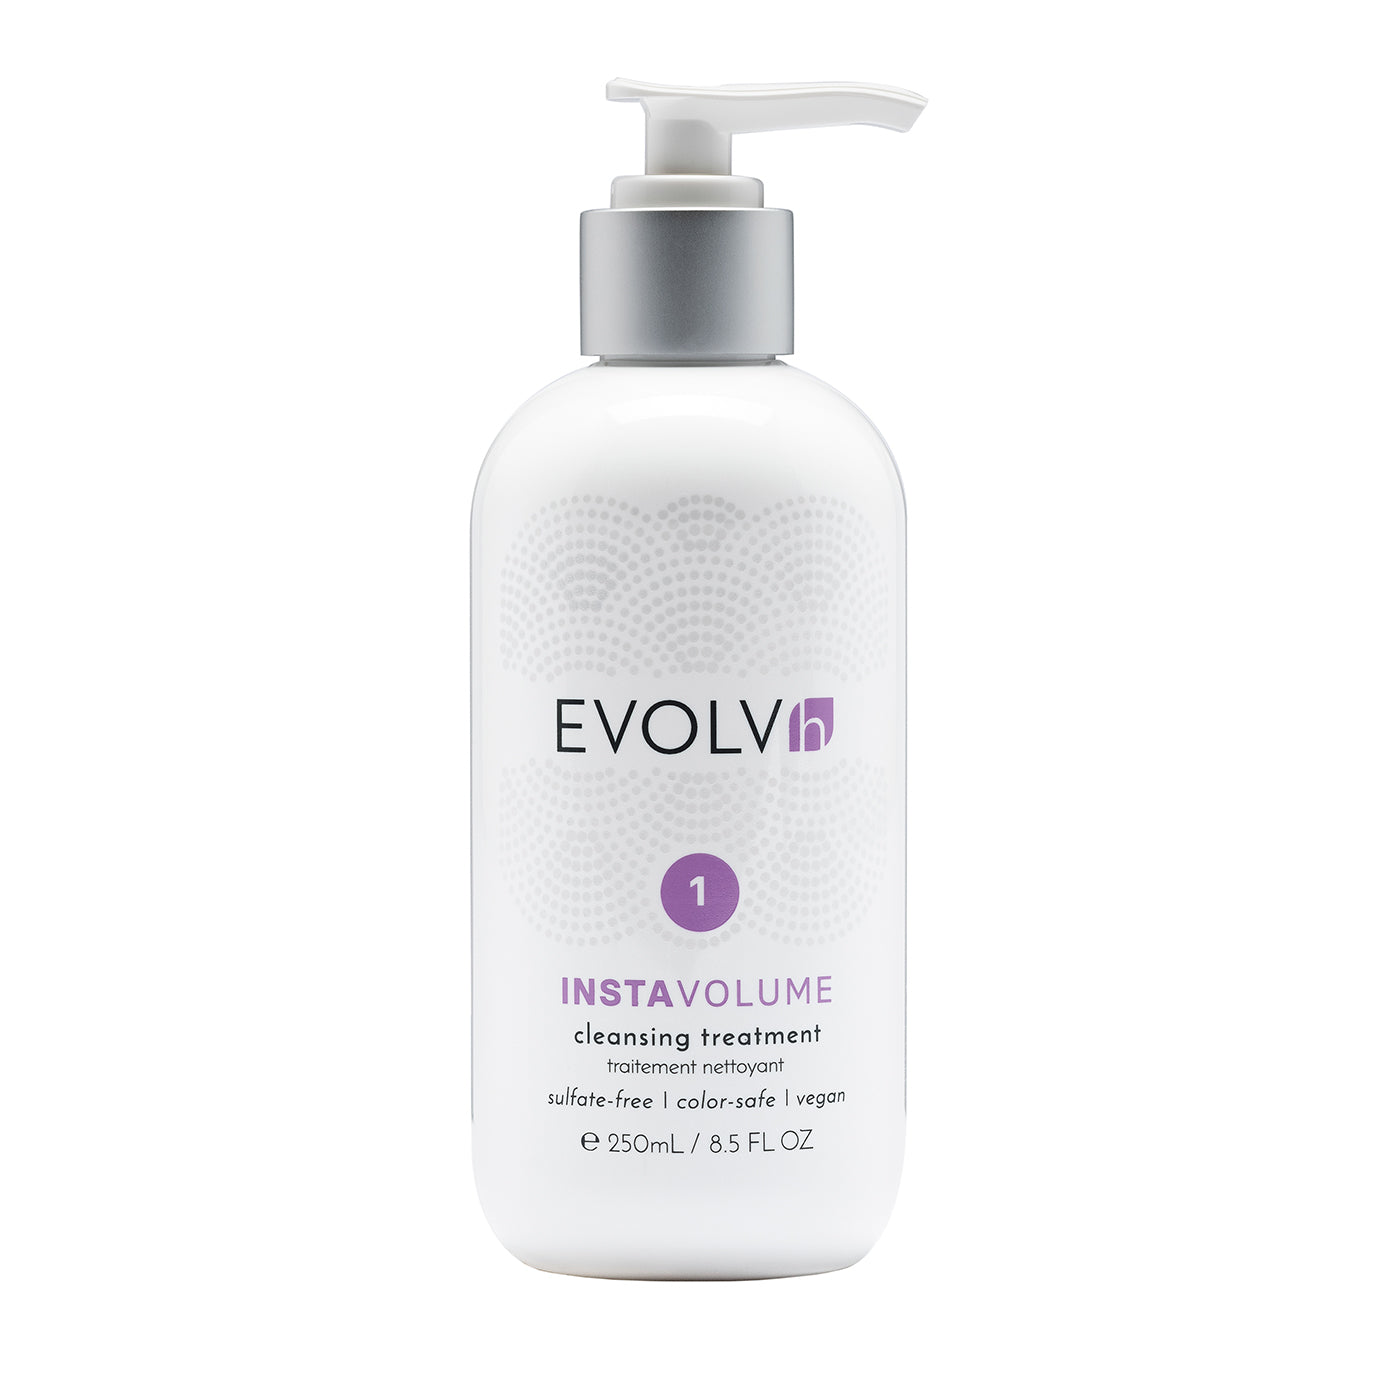 EVOLVh InstaVolume Cleansing Treatment